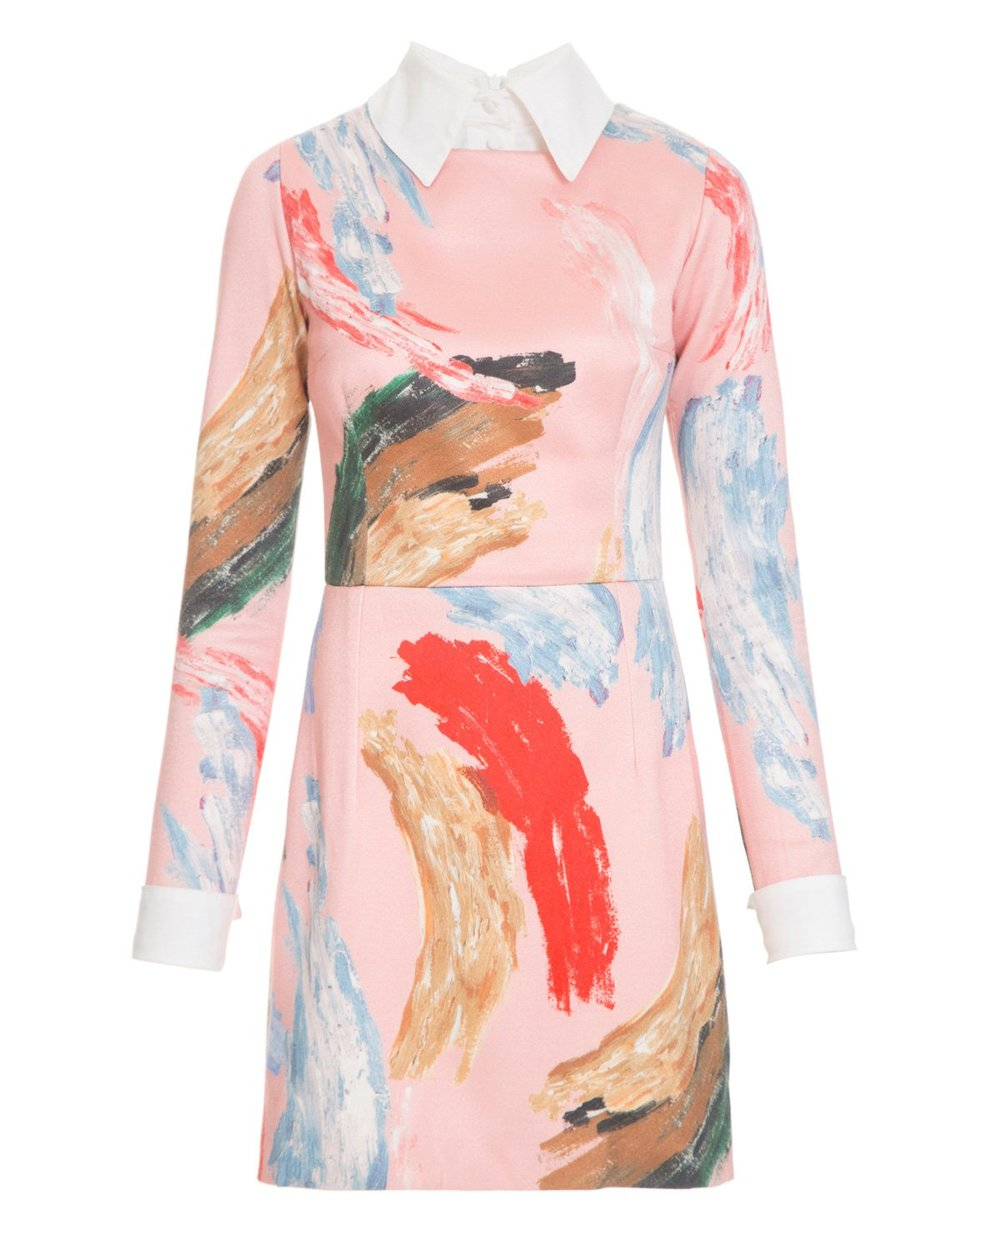 https-::patbo.com:collections:dresses:products:brushstroke-collared-mini-dress-1?variant=48382462420.jpg